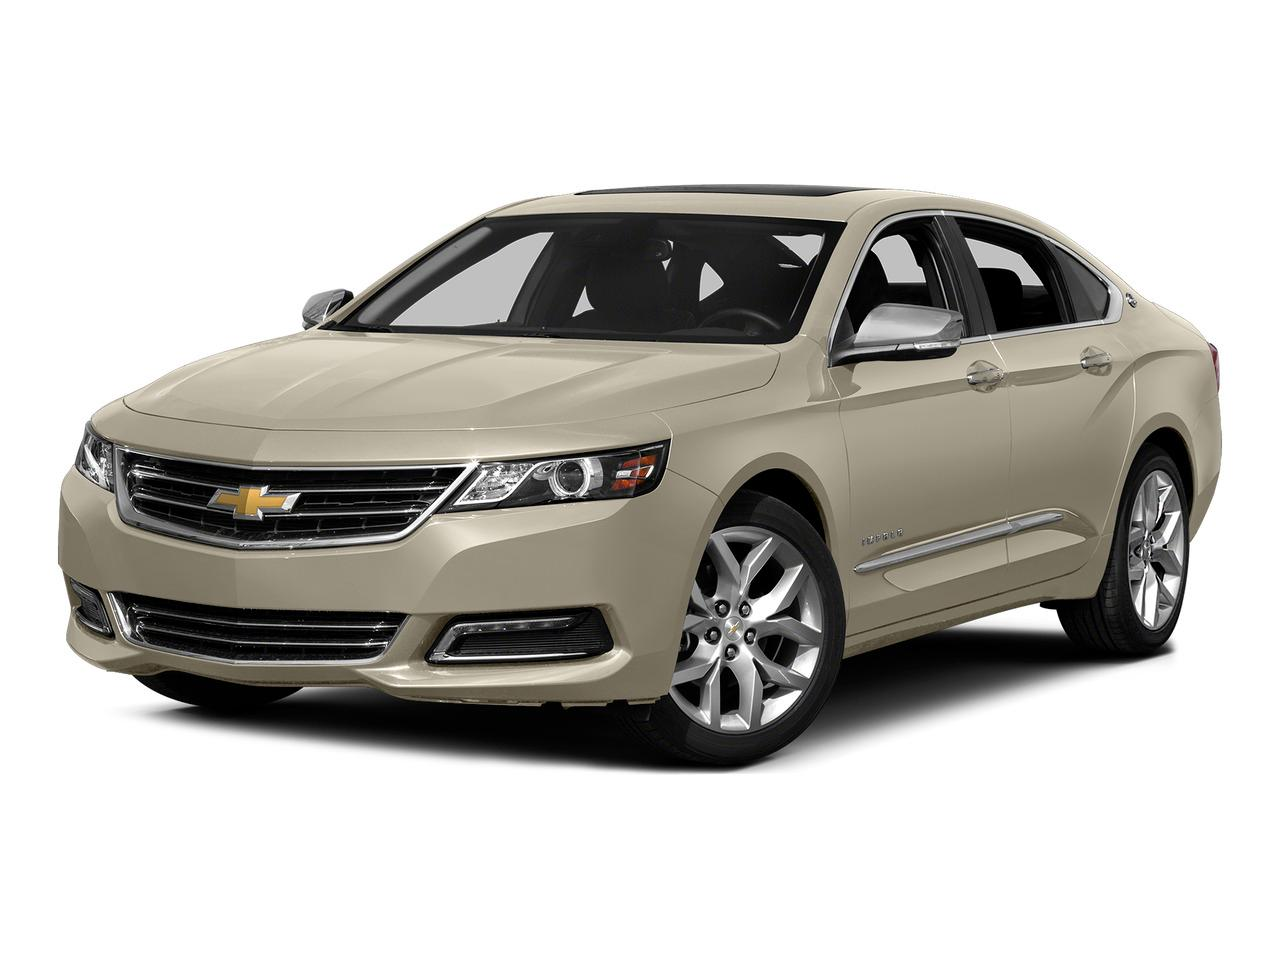 2015 Chevrolet Impala Vehicle Photo in Anchorage, AK 99515